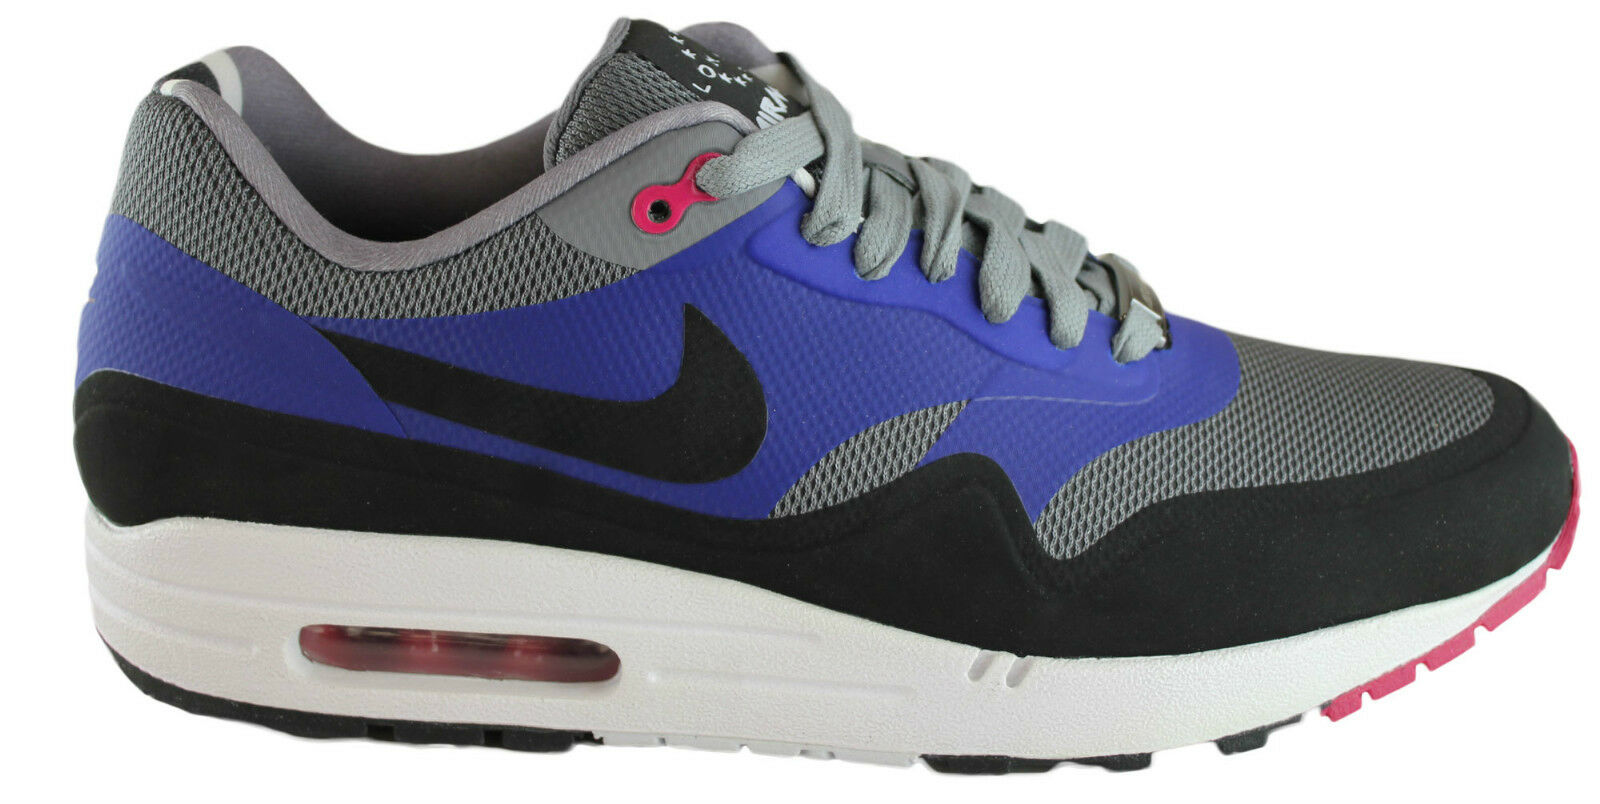 NIKE AIR MAX 1 LONDON QS MENS RUNNING SHOES/SNEAKERS/SPORTS/TRAINERS/FASHION